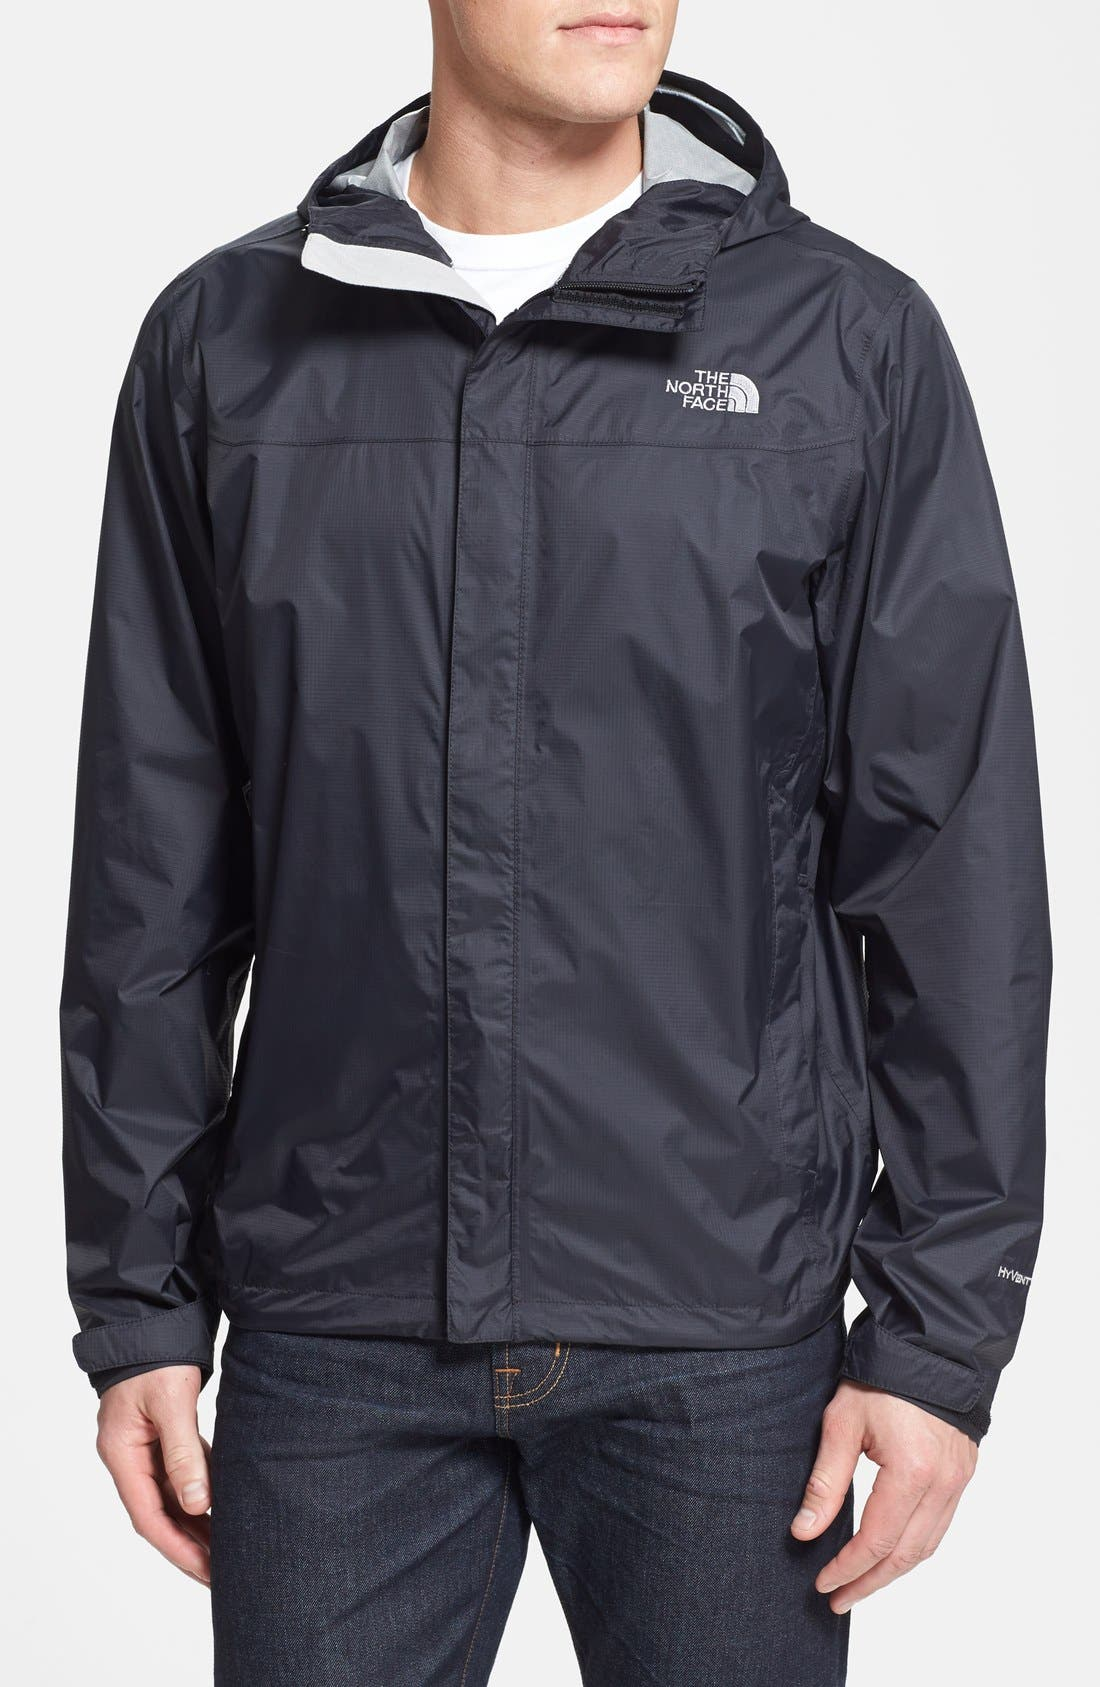 THE NORTH FACE Venture Waterproof Jacket, Main, color, 001